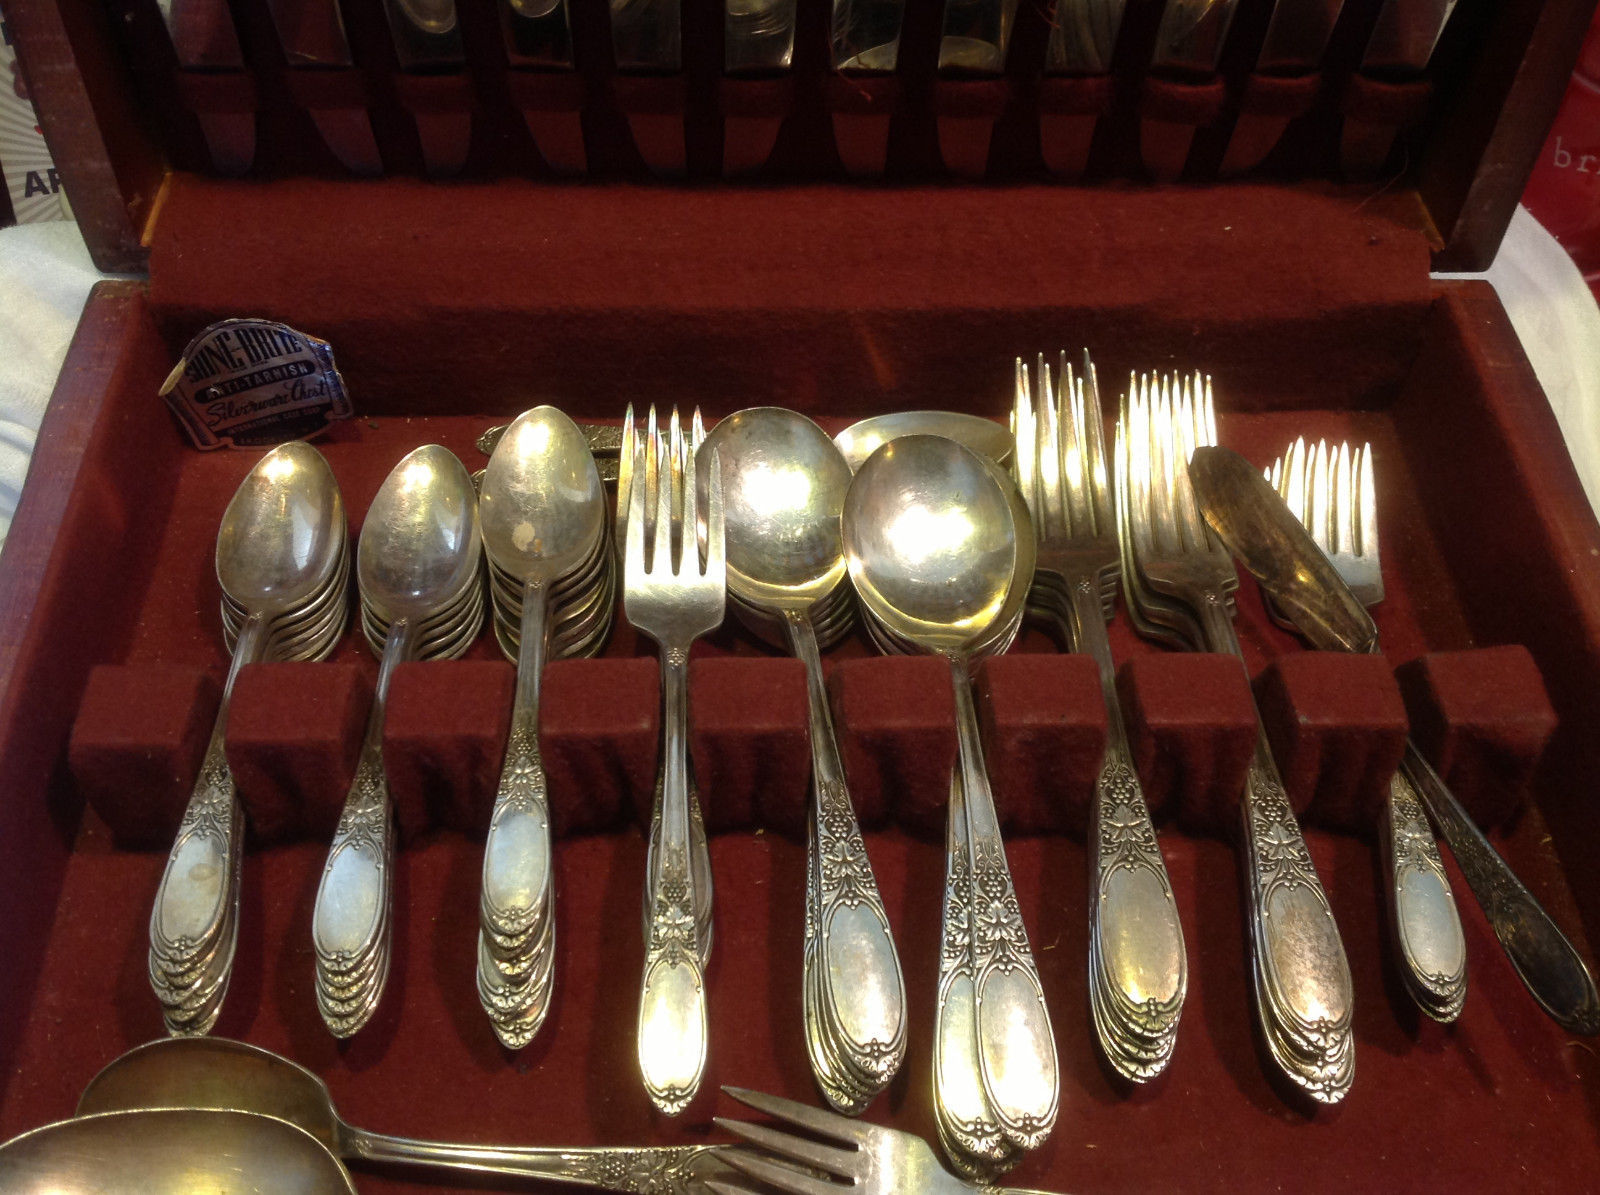 Vintage silverplate set Burgundy-Champaigne 1934 Wm Rogers Eagle & Star Mark